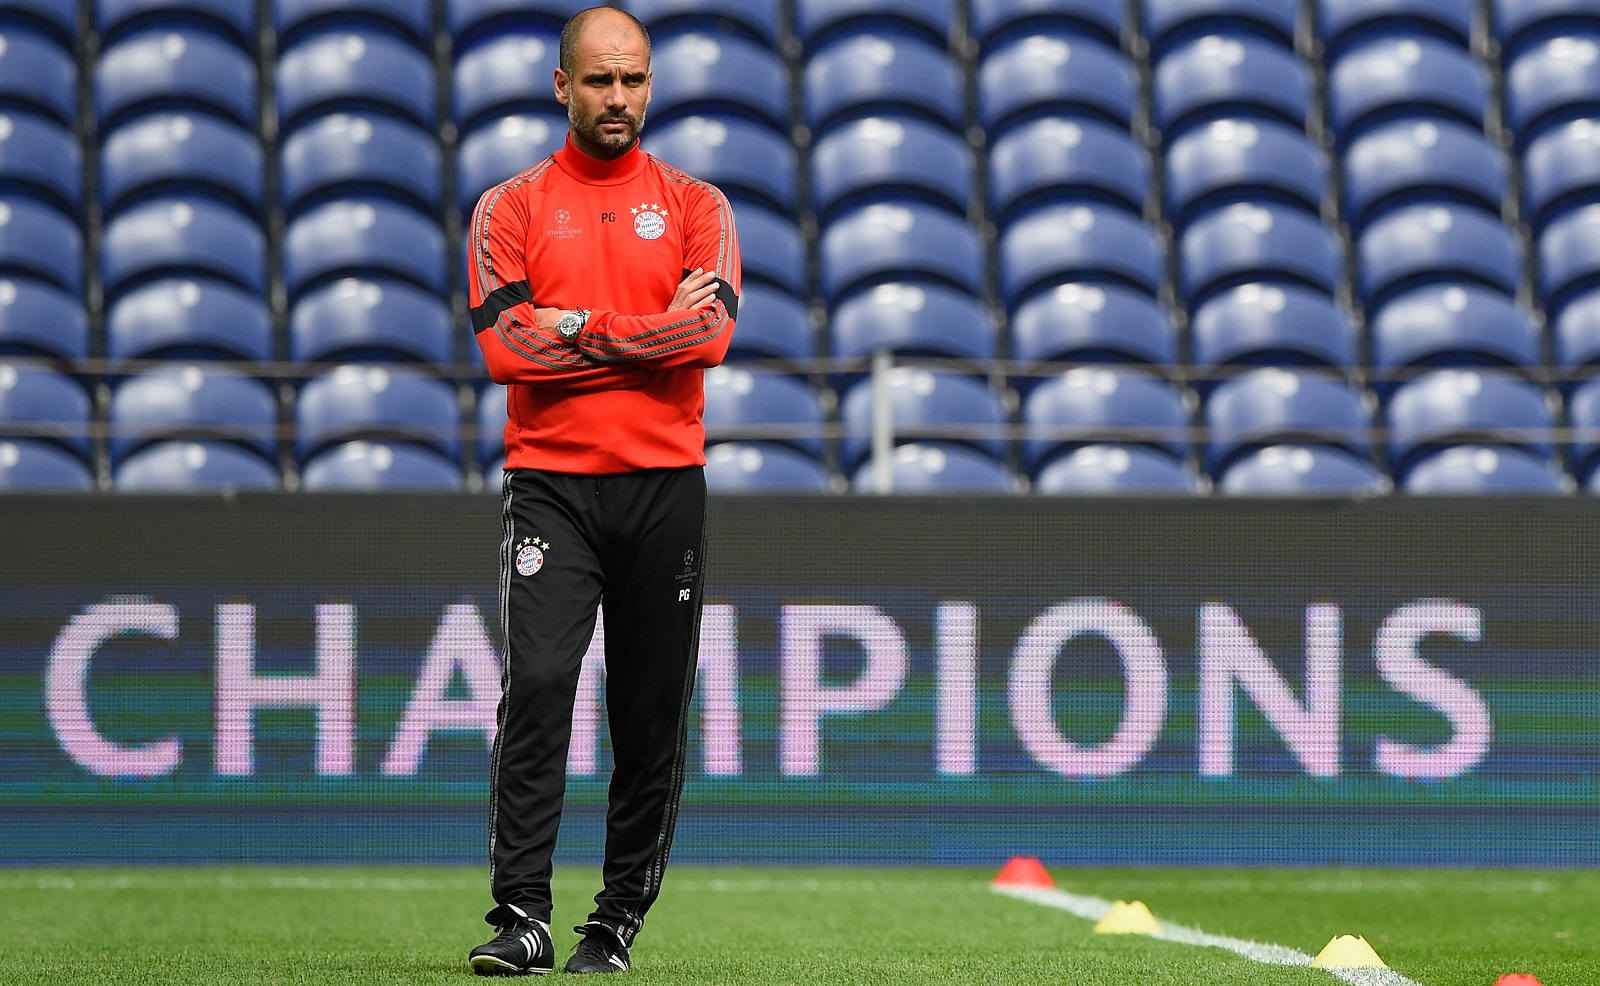 Pep Guardiola's move to Manchester City FC for the 2016-17 season is the major talking point. (Getty Images)